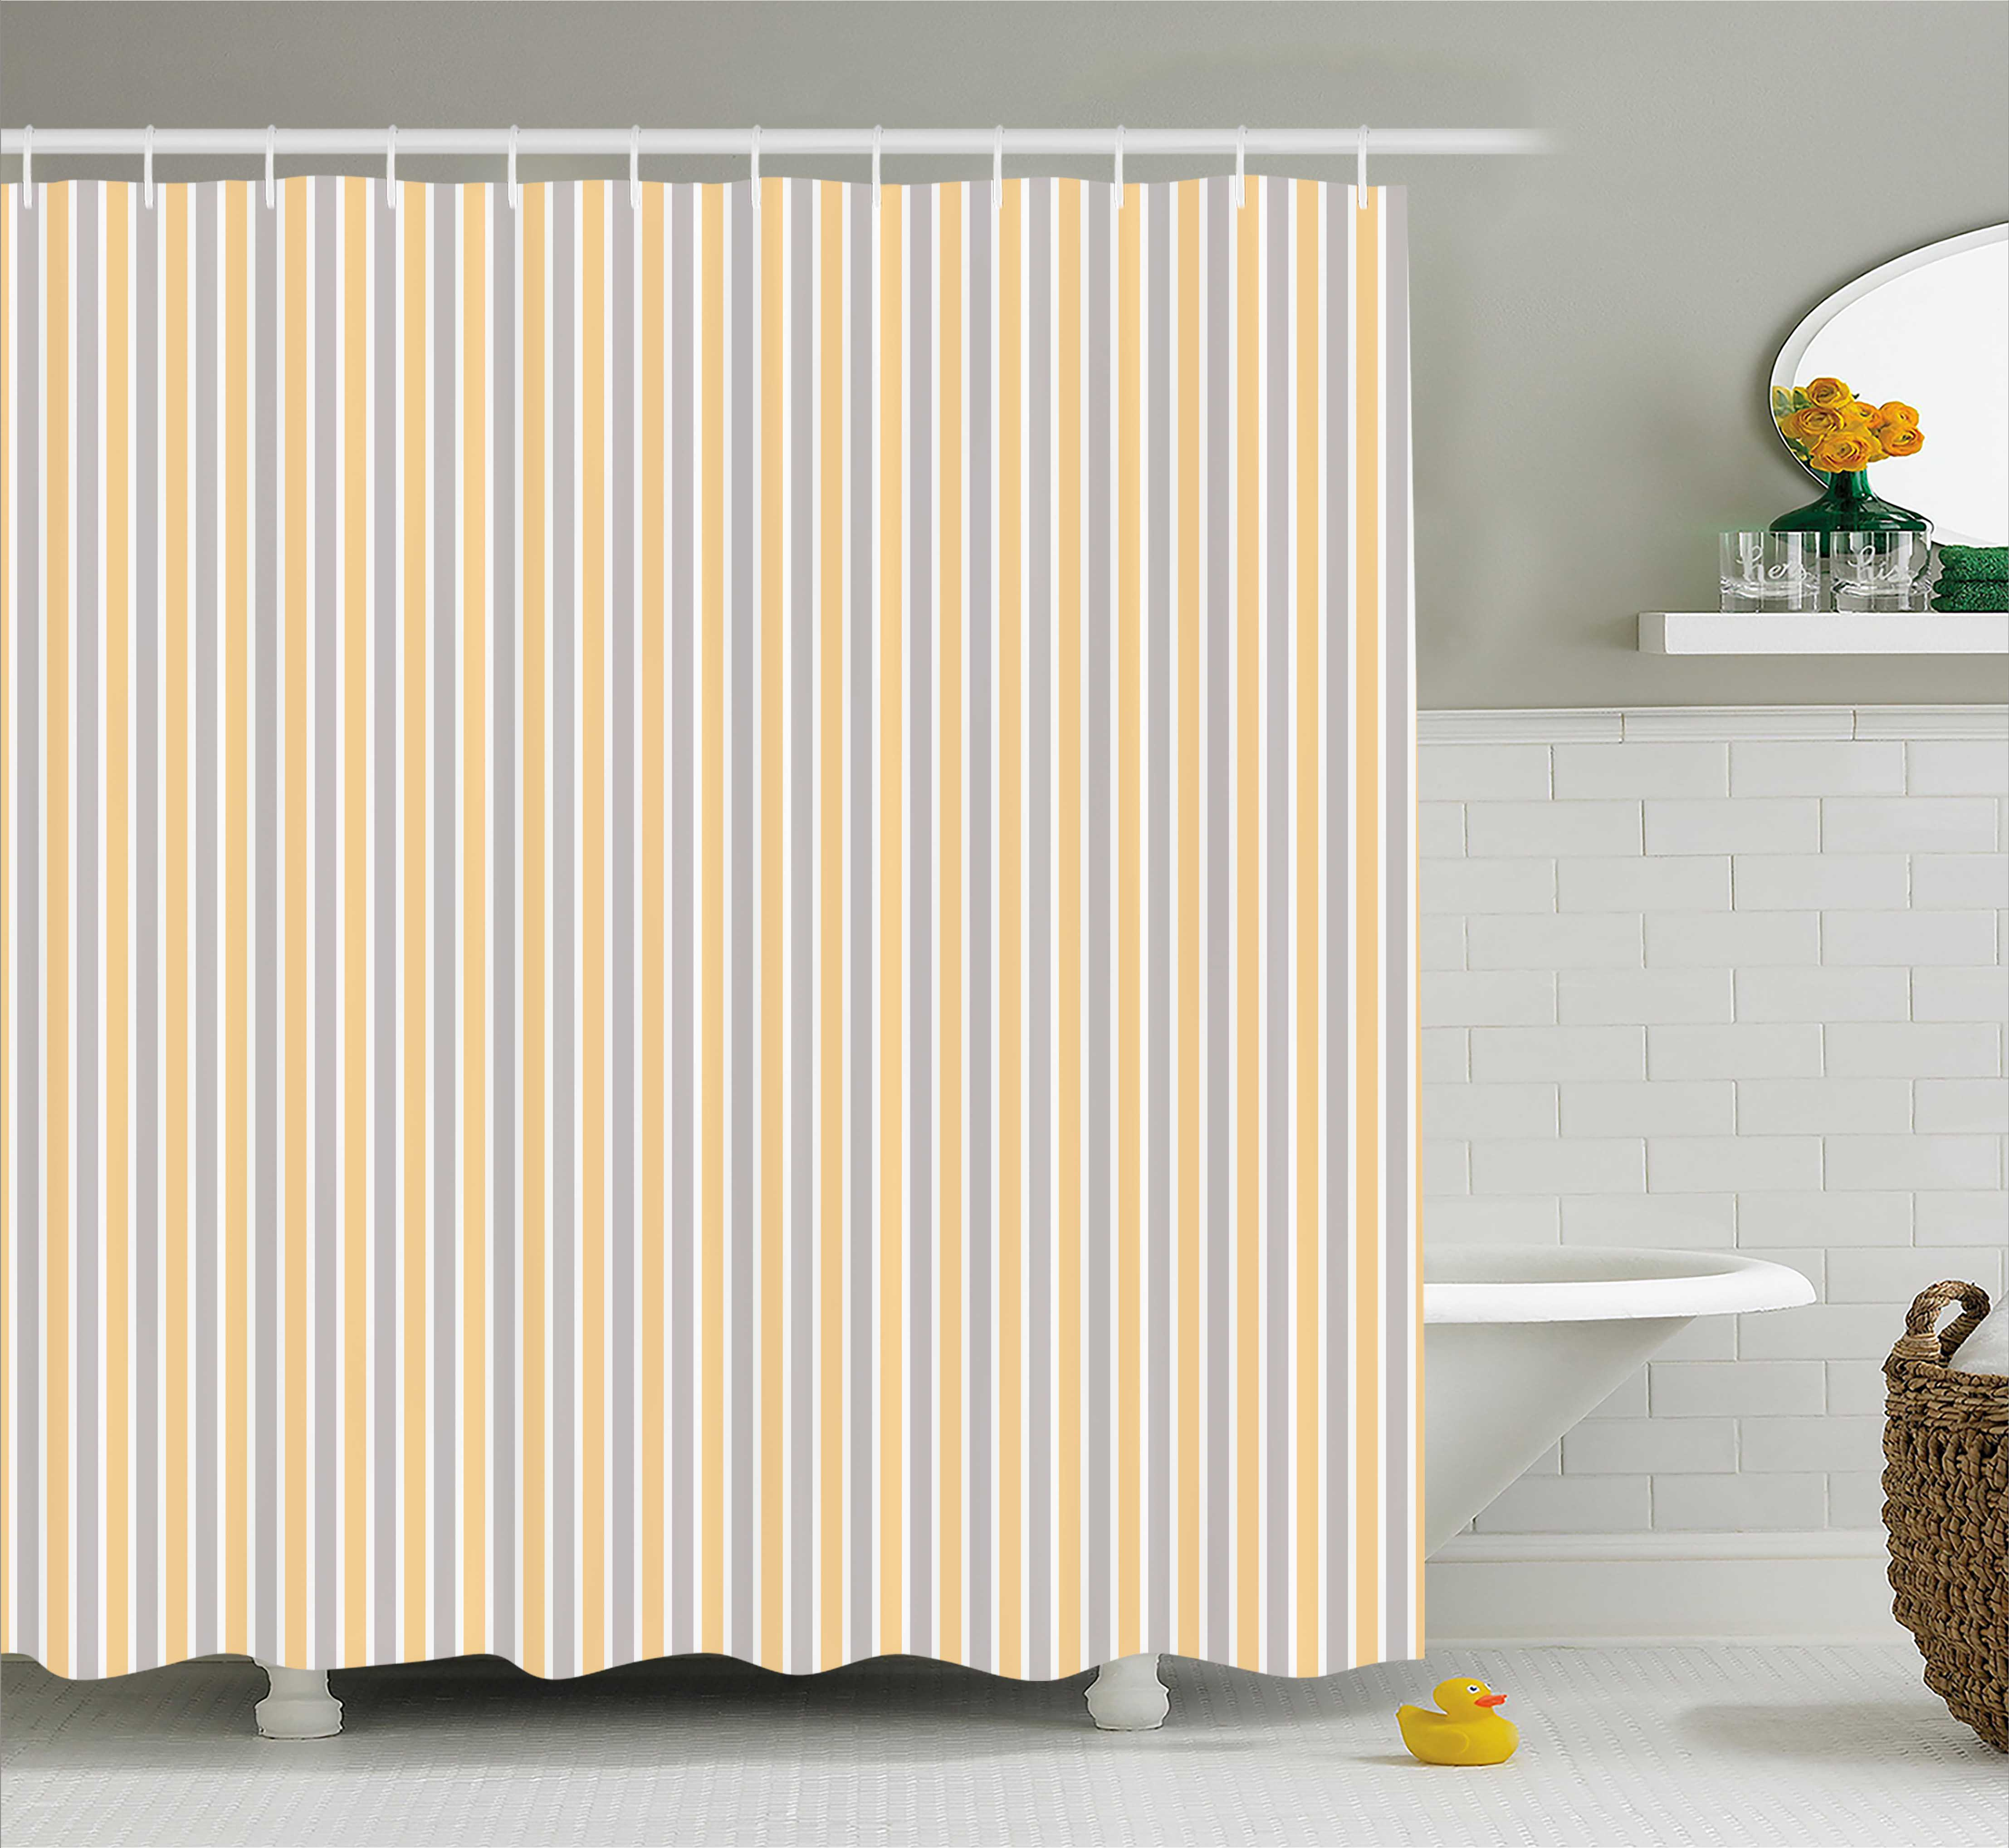 Vintage Shower Curtain Blue And White Vertical Stripes On Orange Background Geometric Pattern Fabric Bathroom Set With Hooks 69w X 84l Inches Extra